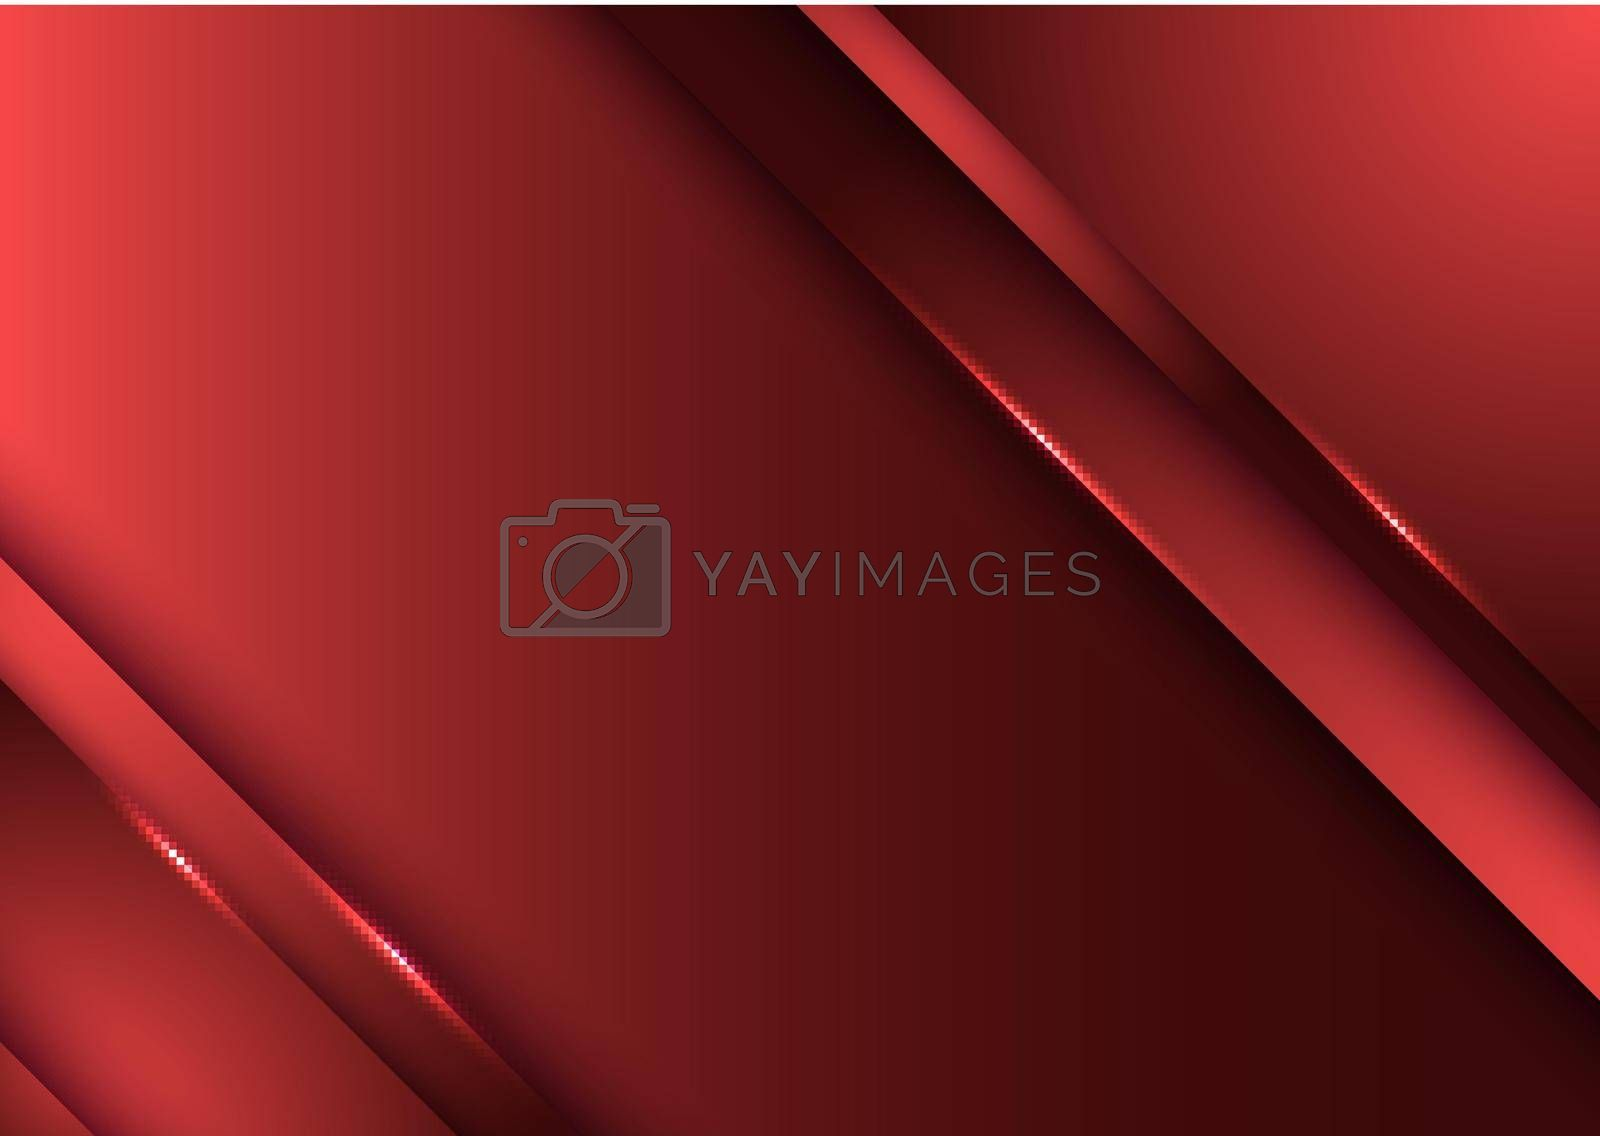 Royalty free image of Template design abstract red gradient stripes overlap layer background with lighting by phochi